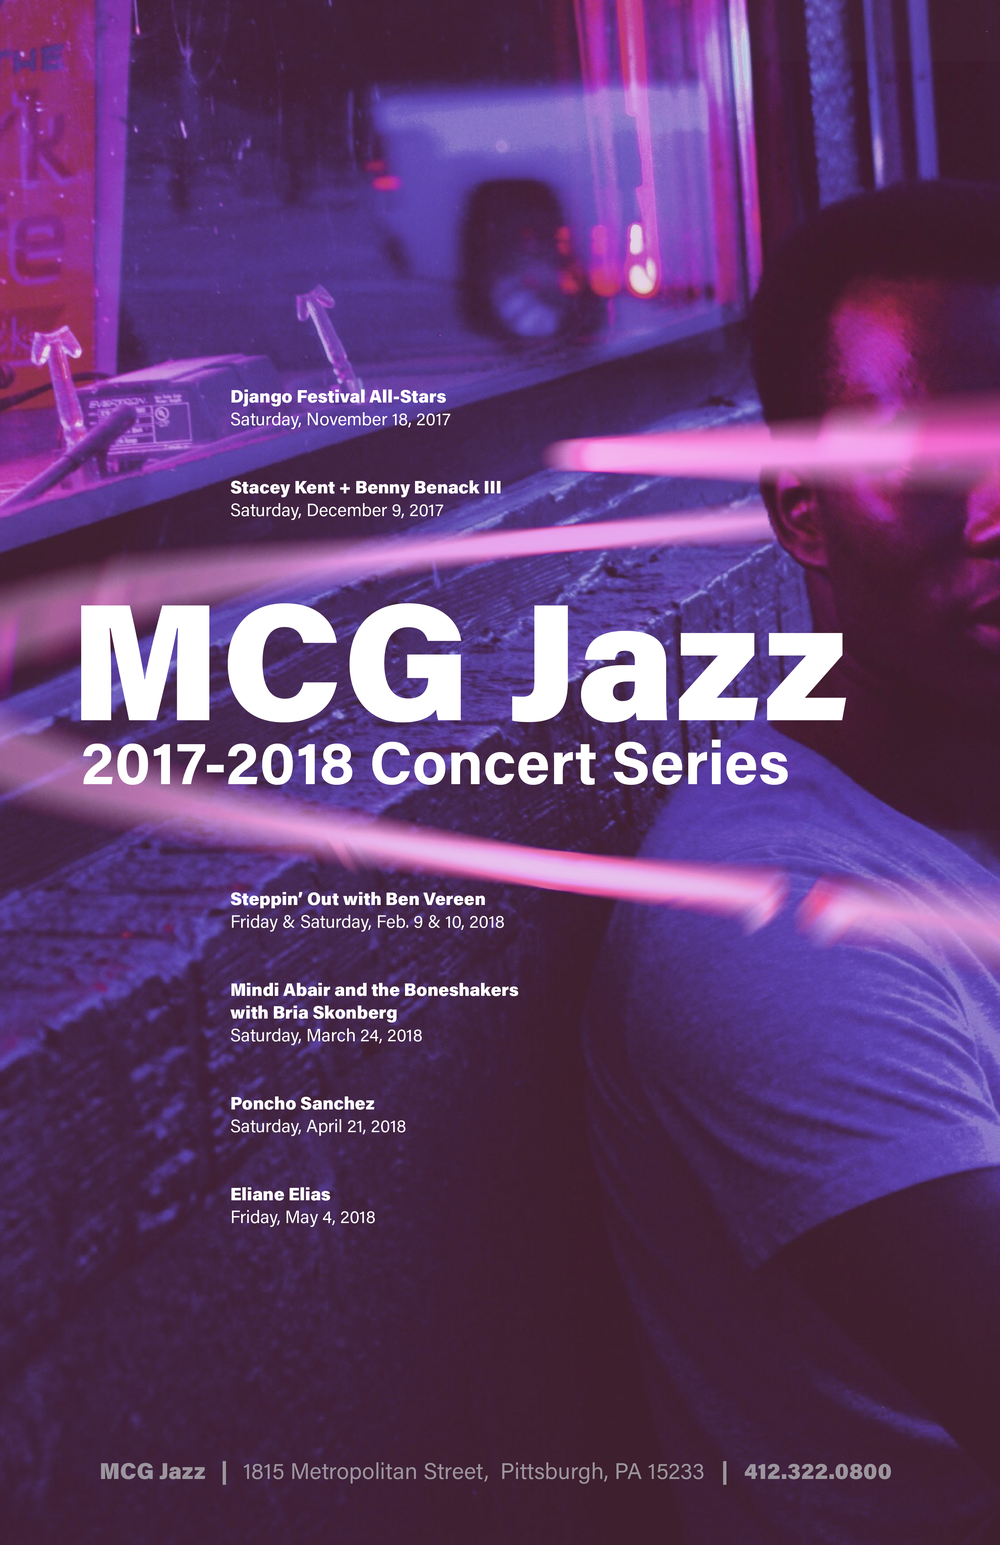 MCGJazzImage2 [Recovered]-08.png